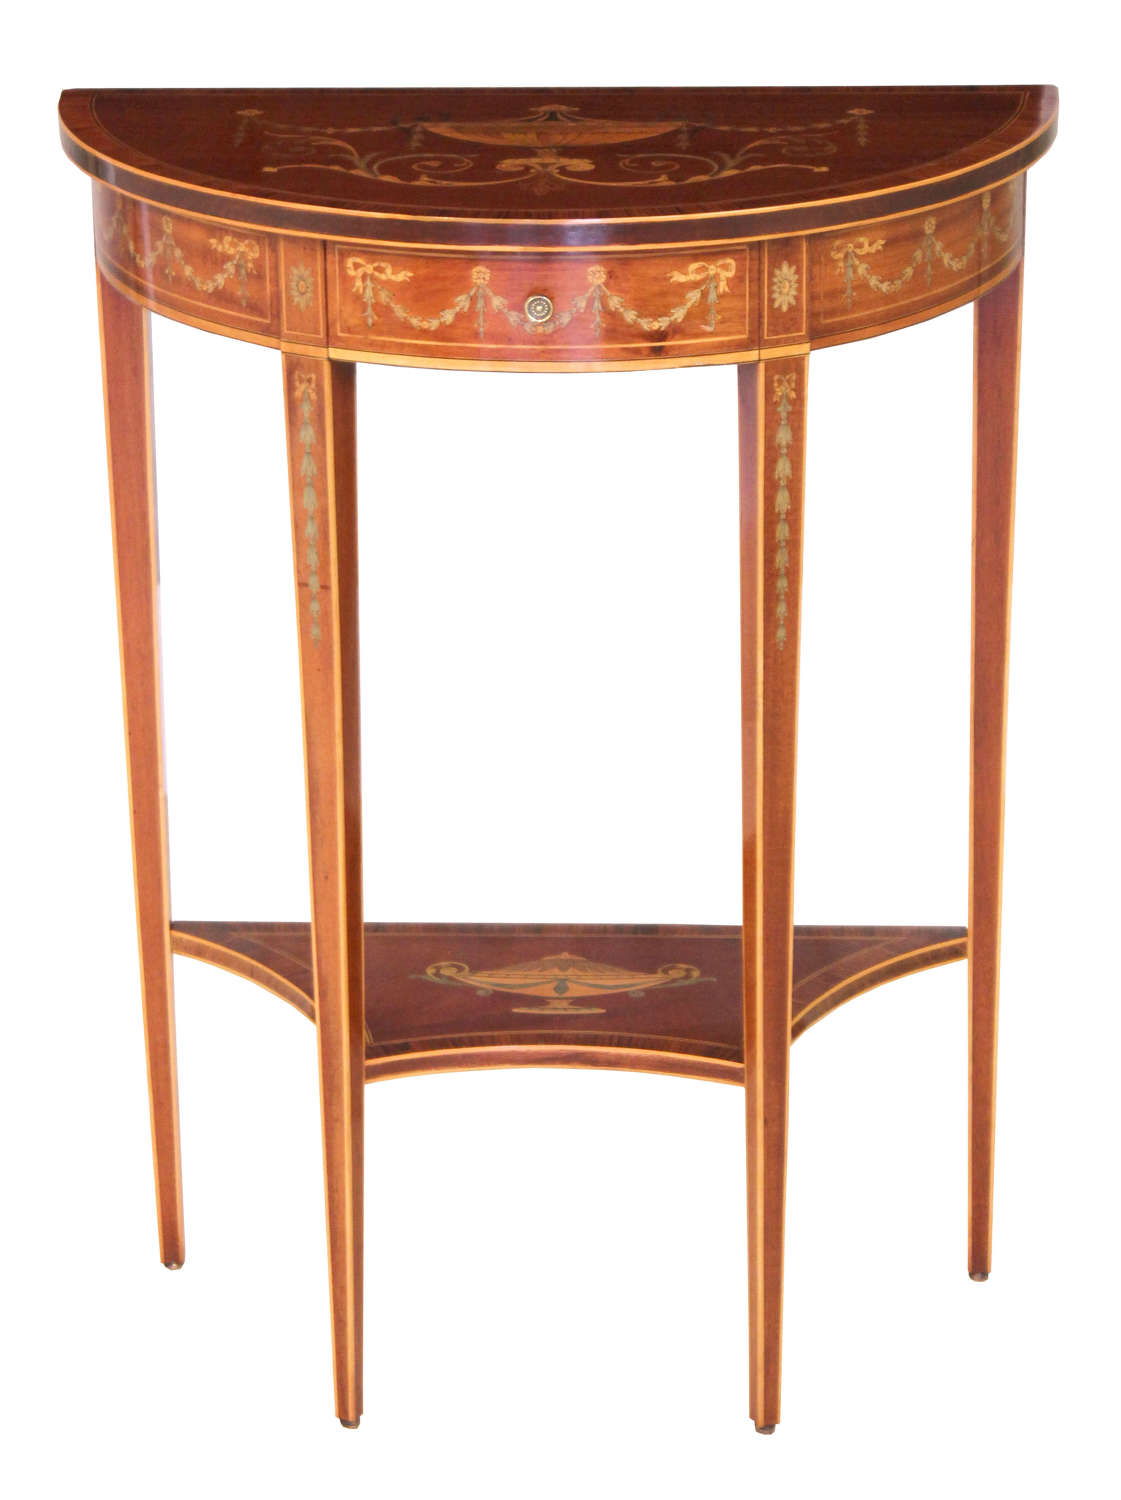 A Fine Quality Late Victorian Mahogany Edwards & Roberts Console Table